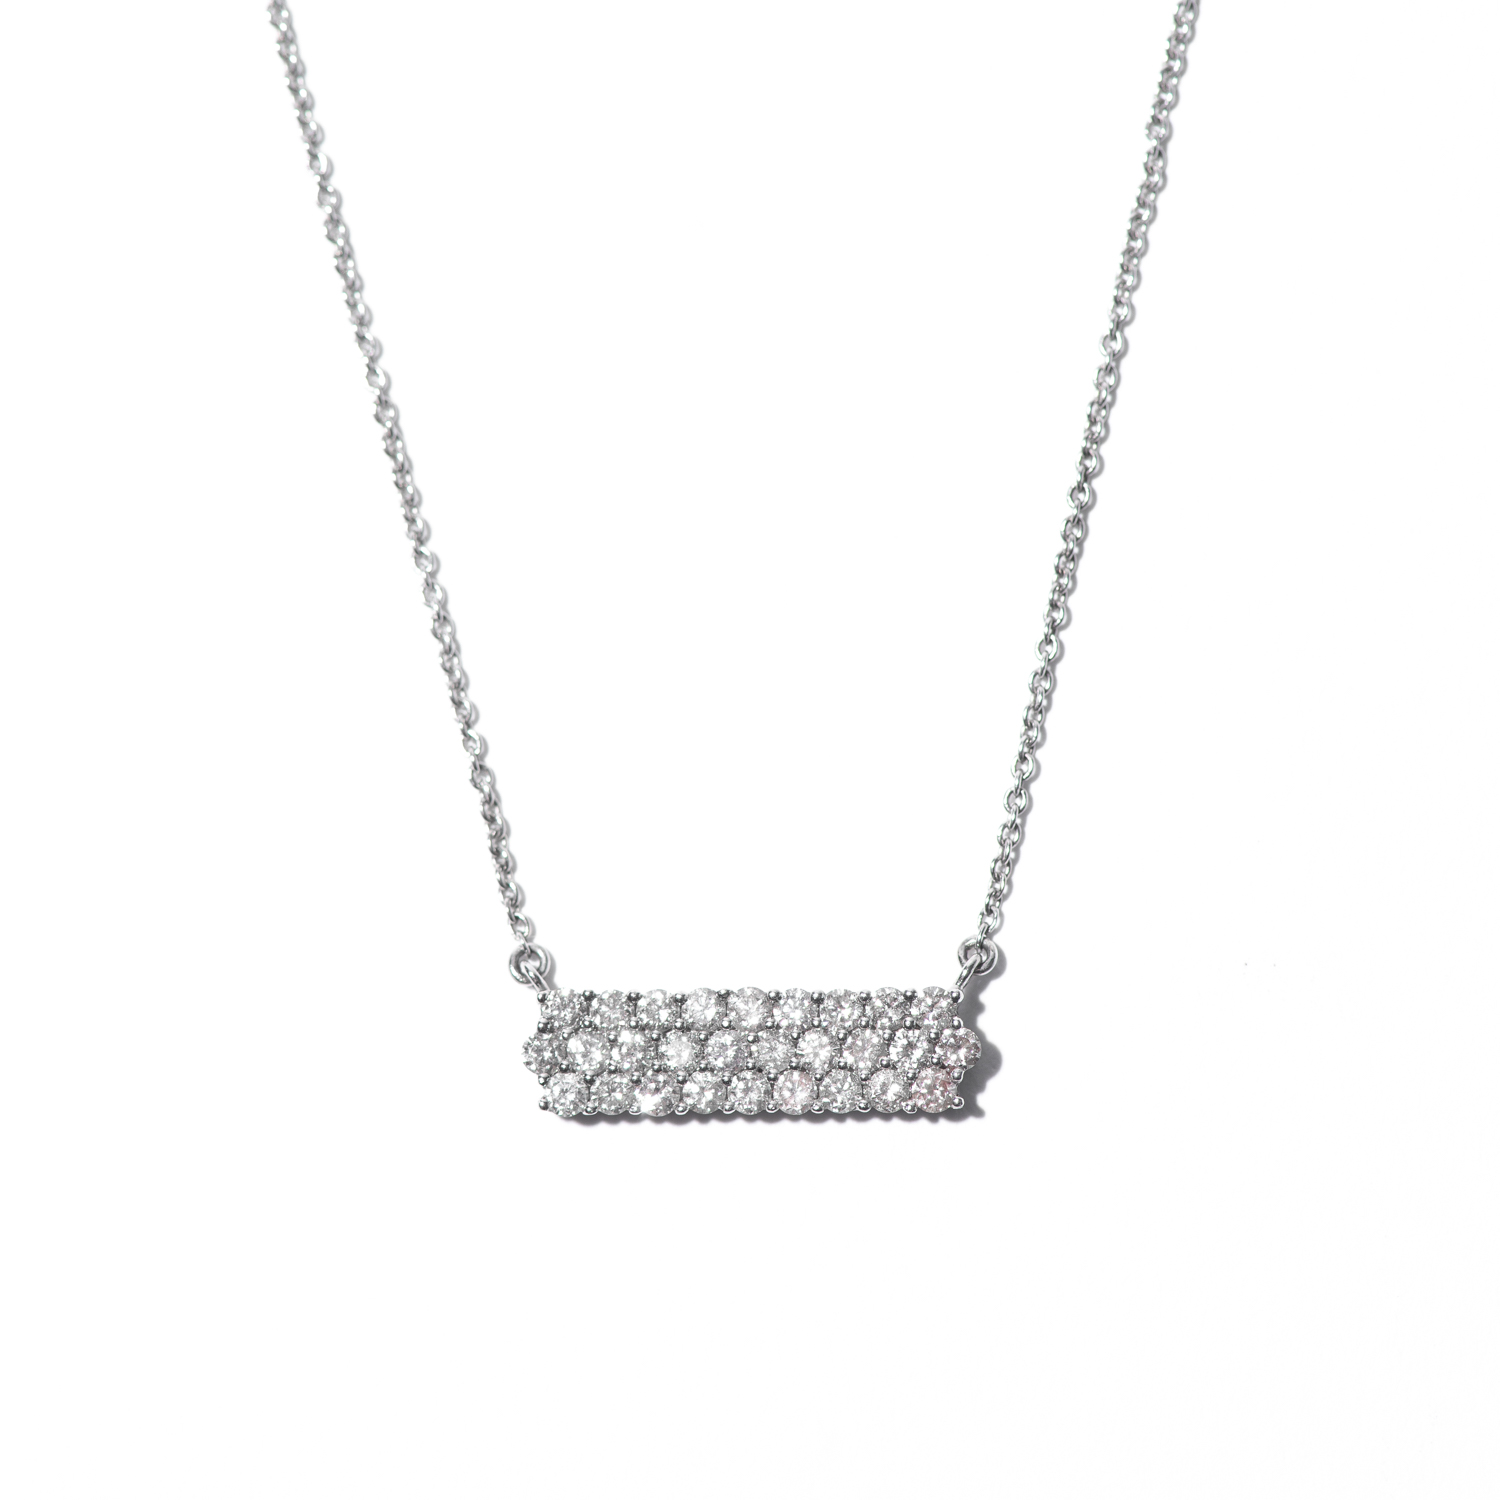 Design Nineteen. - Triple Set Diamond Necklace.